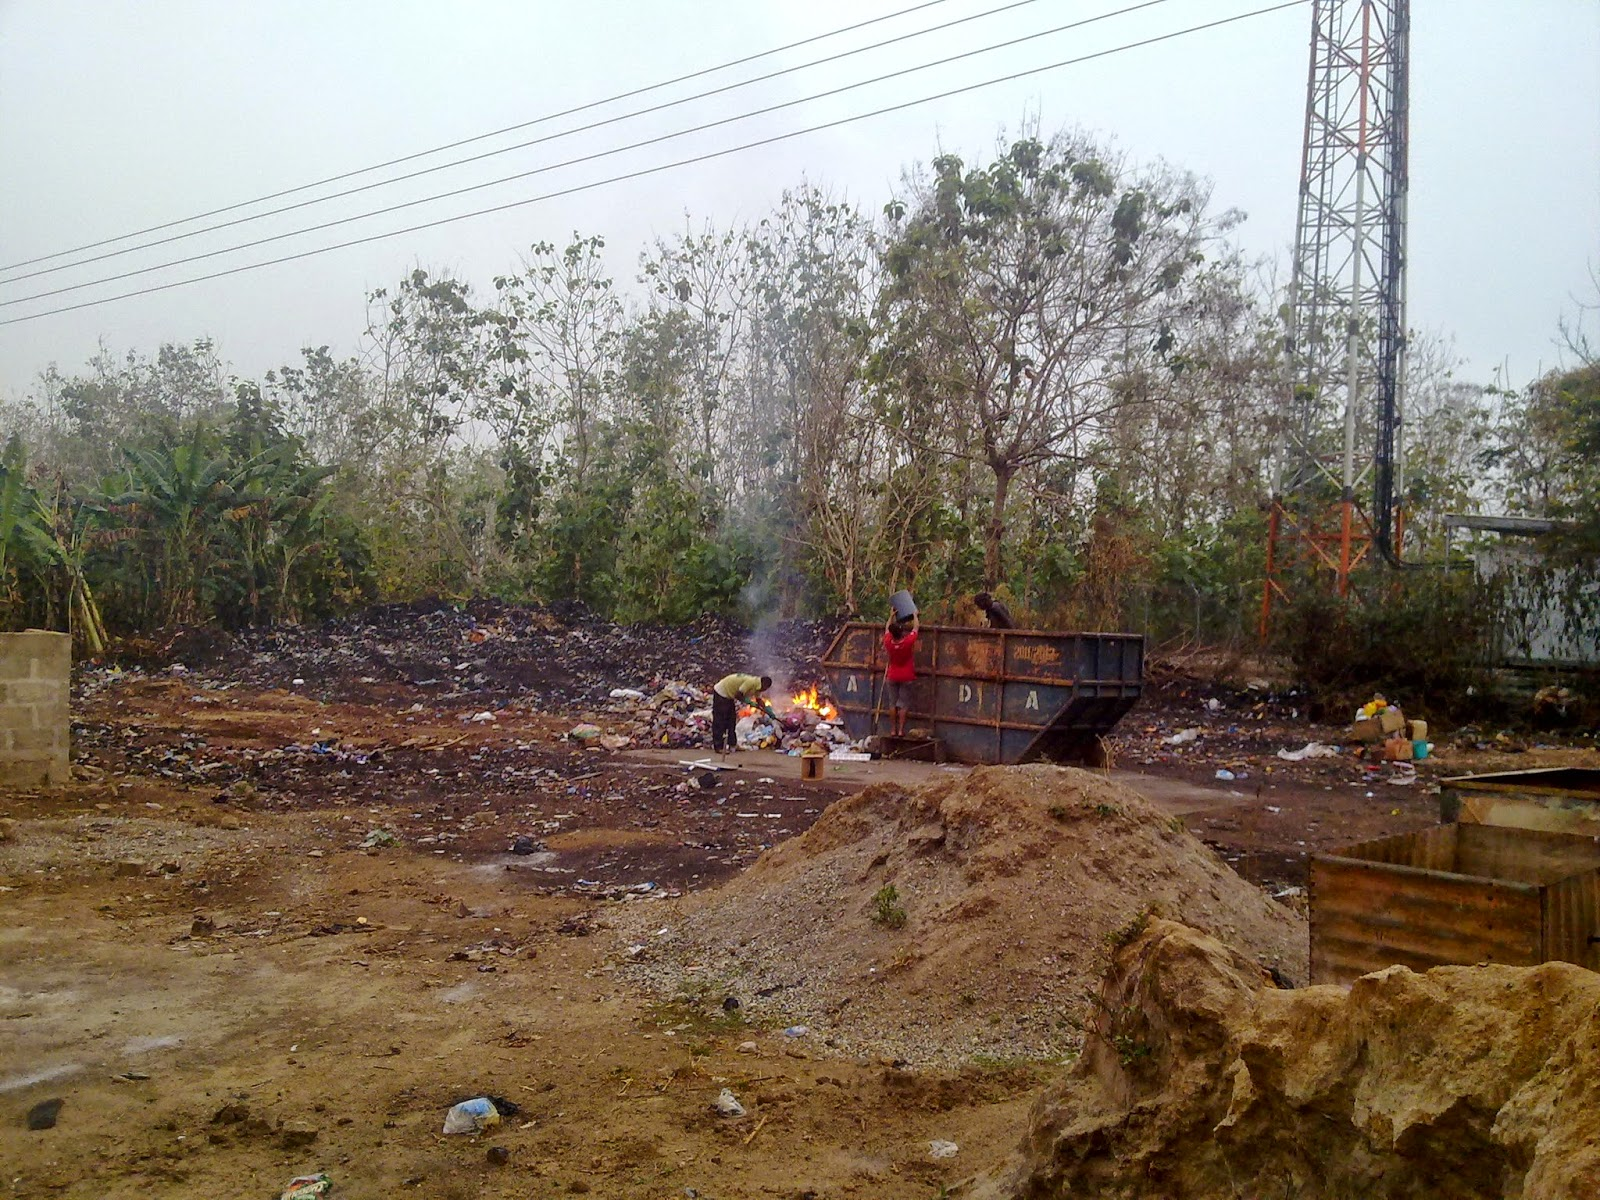 Photo of Photos: Dump Site Cleared by S.M.A; following a report by The News Hunter Mag